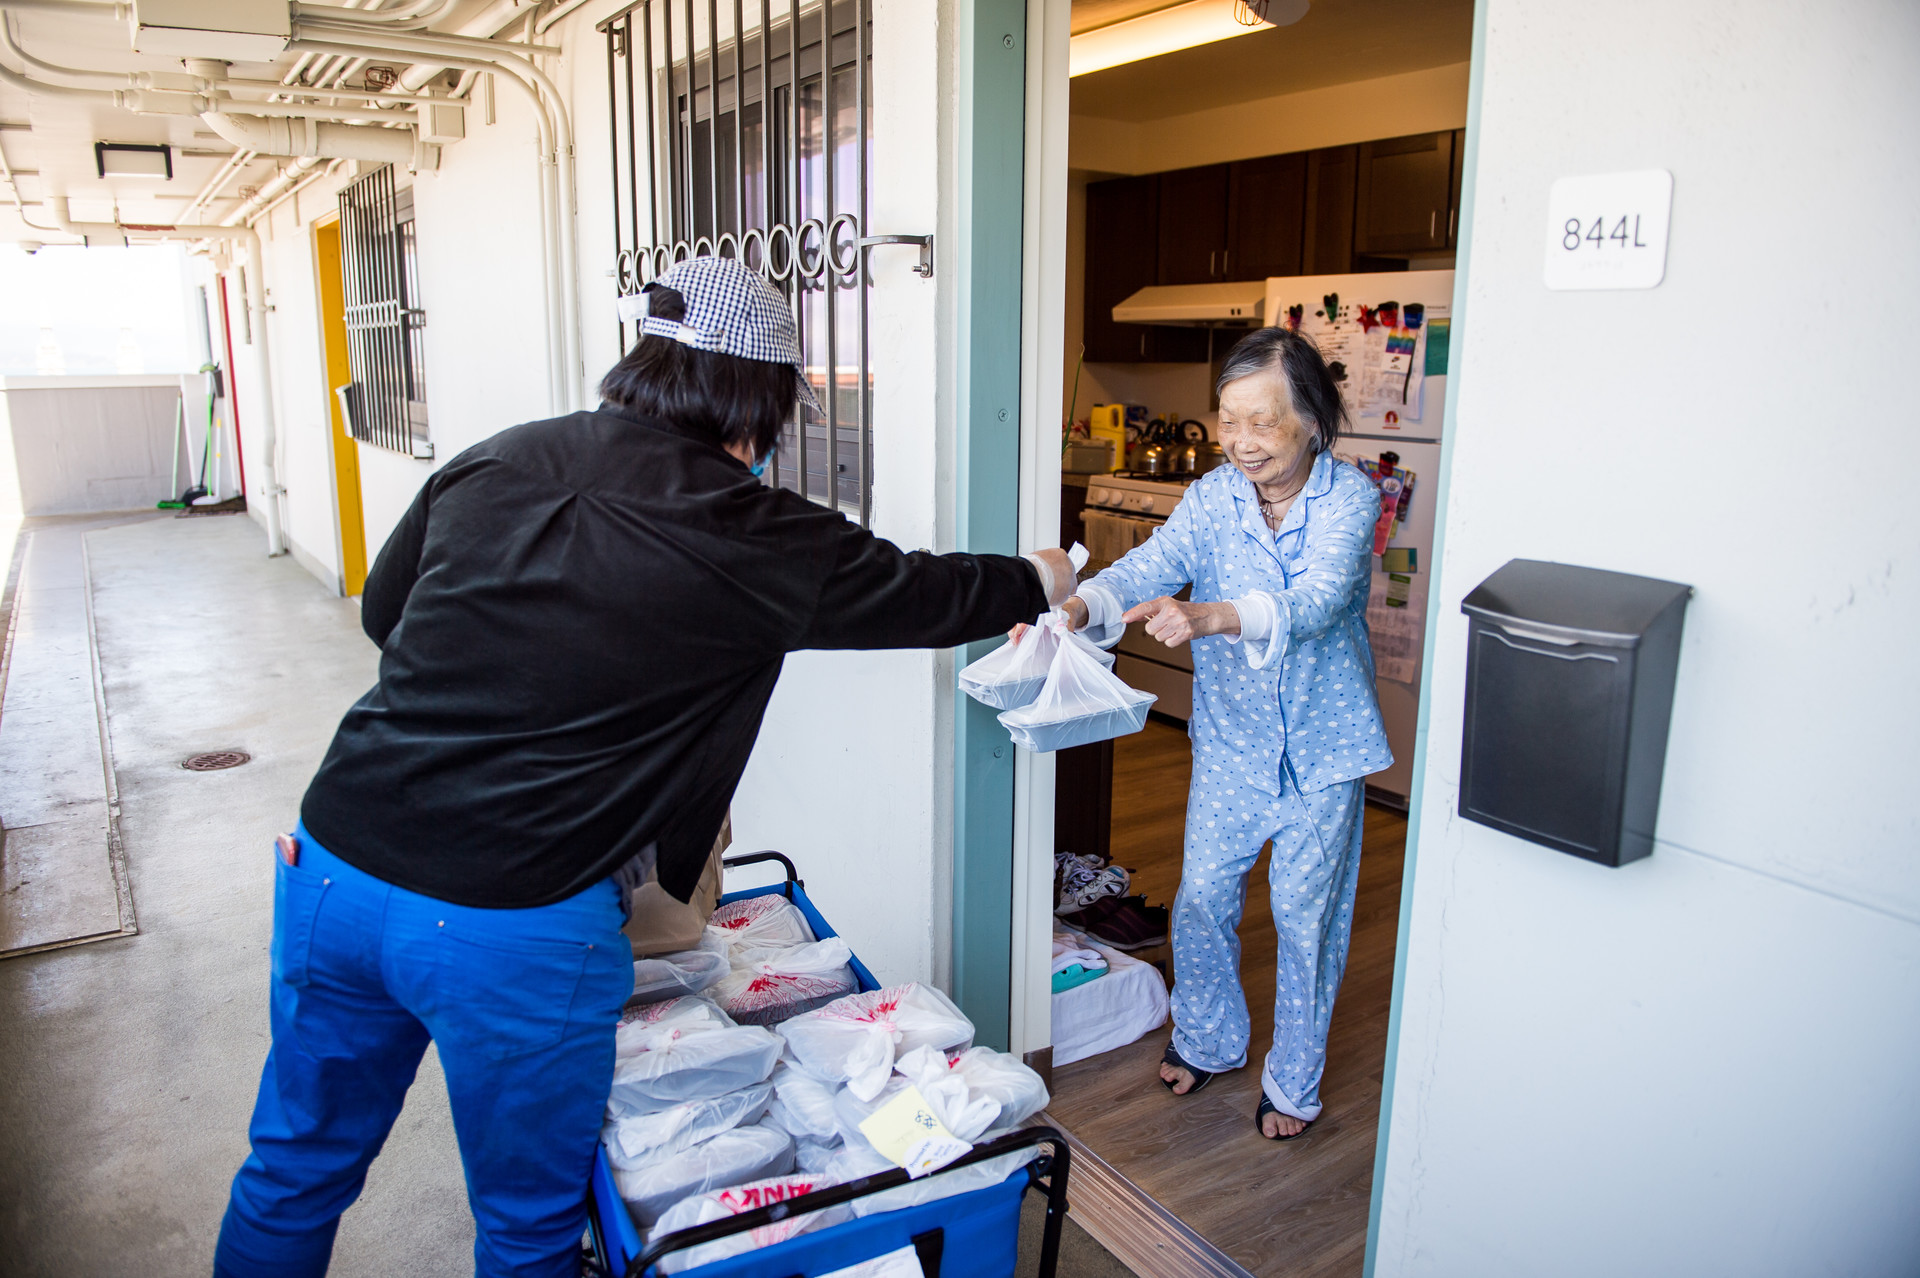 Ruqiong Fang delivers meals to residents at Ping Yuen, a public housing building in Chinatown, on April 5, 2020. Fang volunteers five days a week to help deliver meals.